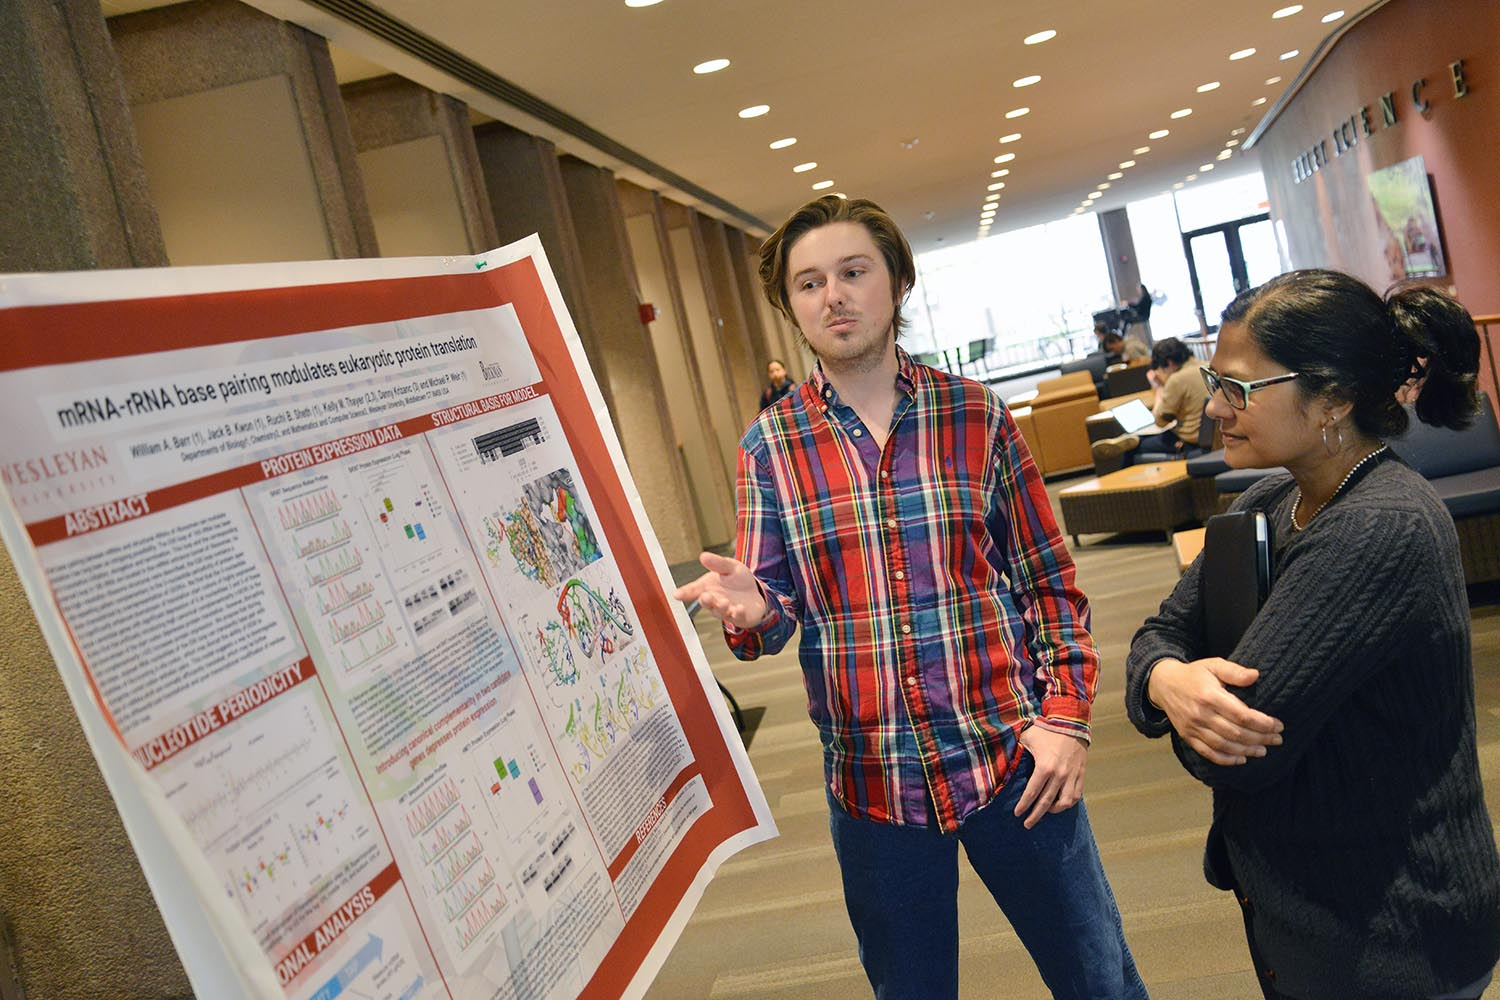 """BA/MA graduate student Will Barr shared his poster titled """"mRNA-rRNA Base Pairing Modulates Eukaryote Protein Translation"""" with Ishita Mukerji, theFisk Professor of Natural Science and professor of molecular biology and biochemistry.Barr's advisor is Michael Weir, professor of biology."""